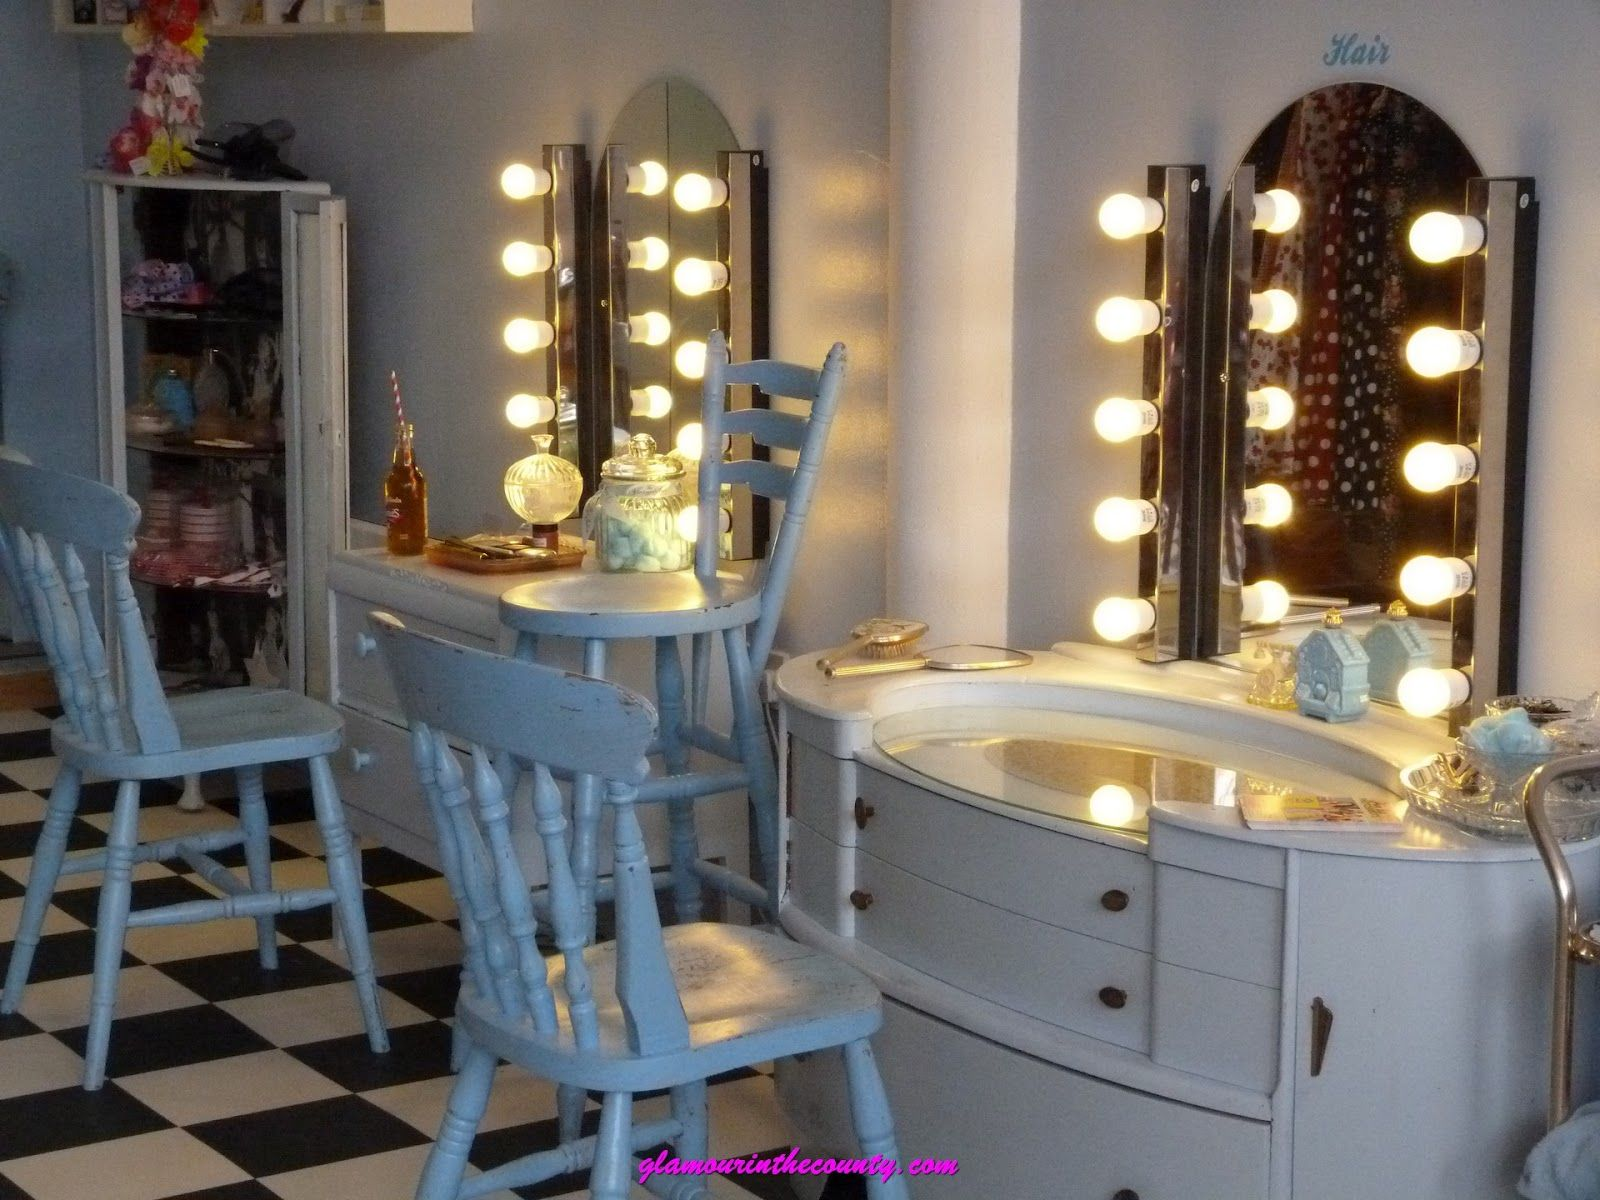 Nail salon interior decorating ideas - Glamour In The County Reviews Insights And Inspiration Lekeux Vintage Salon Vintage Salon Decorvintage Hair Salonsnail